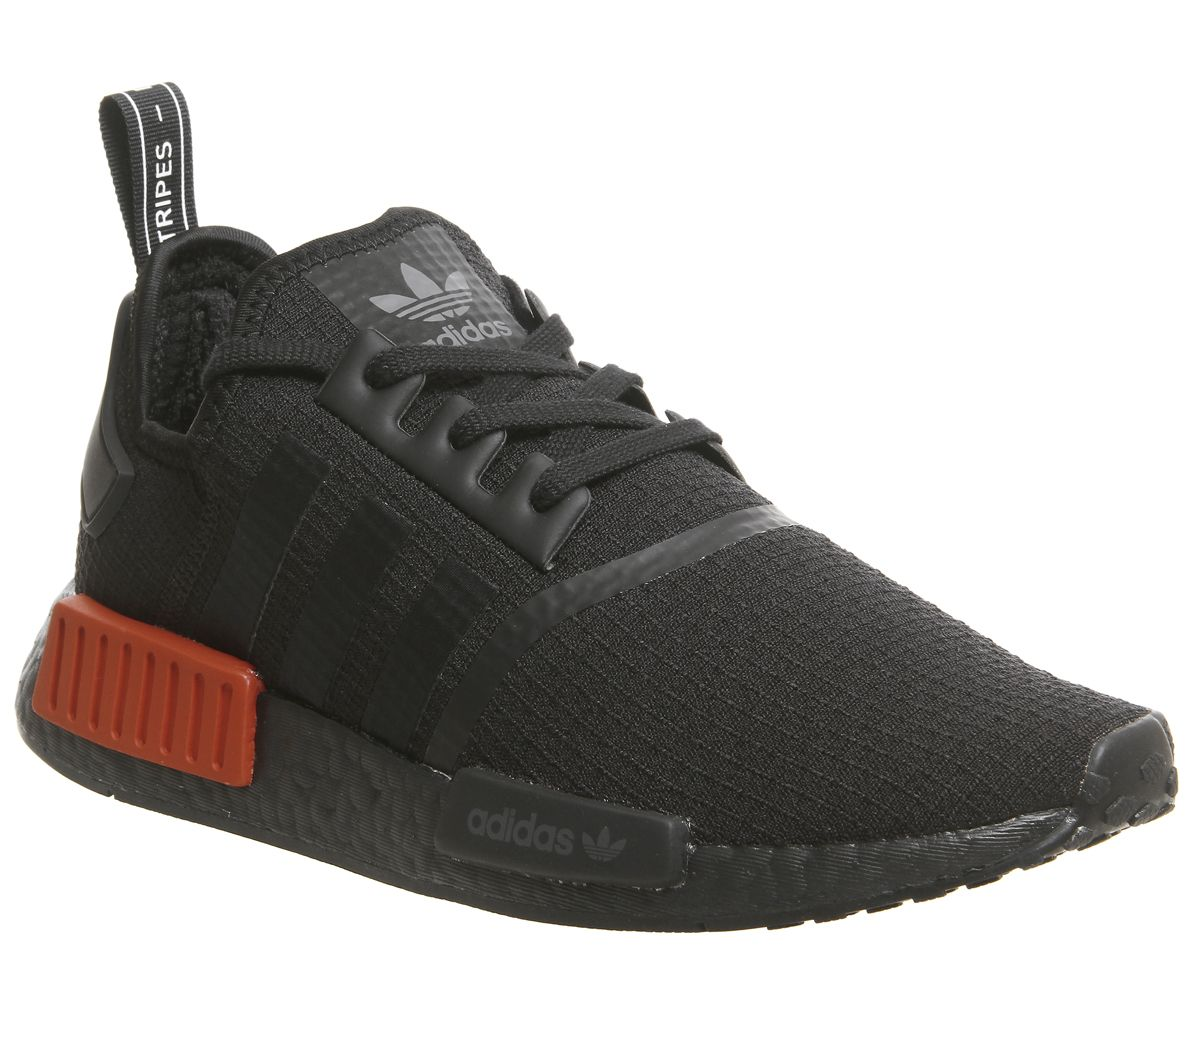 2d63093f3 adidas Nmd R1 Trainers Core Black Lush Red - His trainers